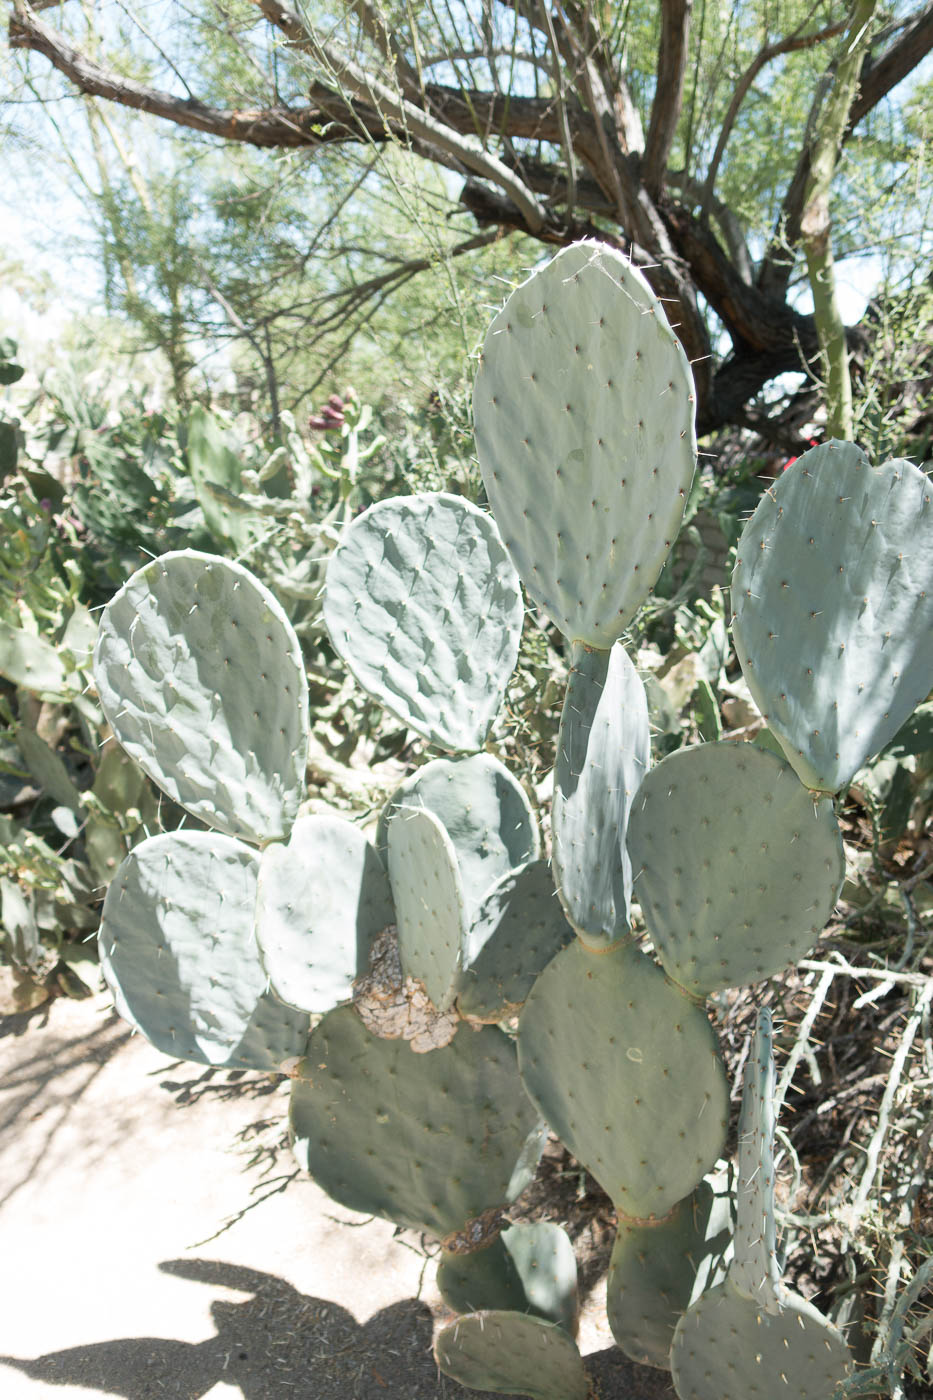 Cactus plant at Moorten Botanical Garden | The Chic Diary.jpg